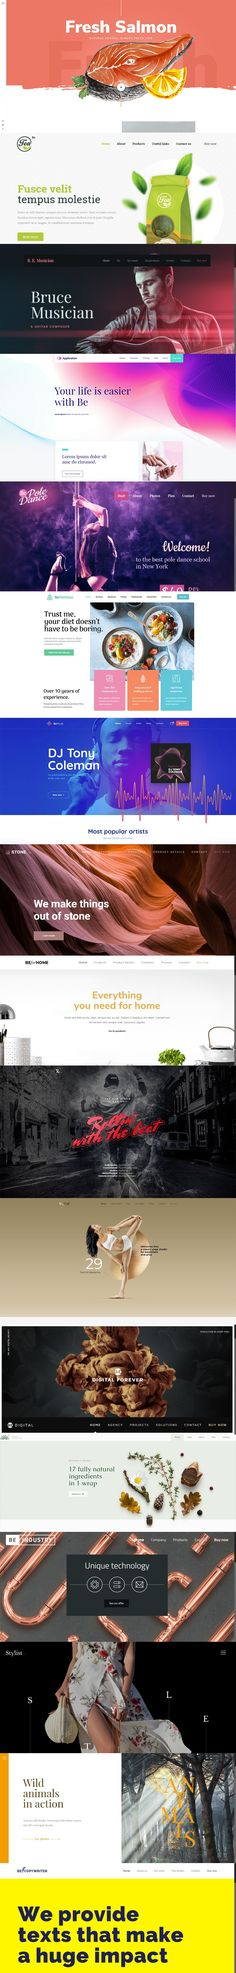 These #WordPress #Theme Followed the Latest #Design Trends – With Stunning Results